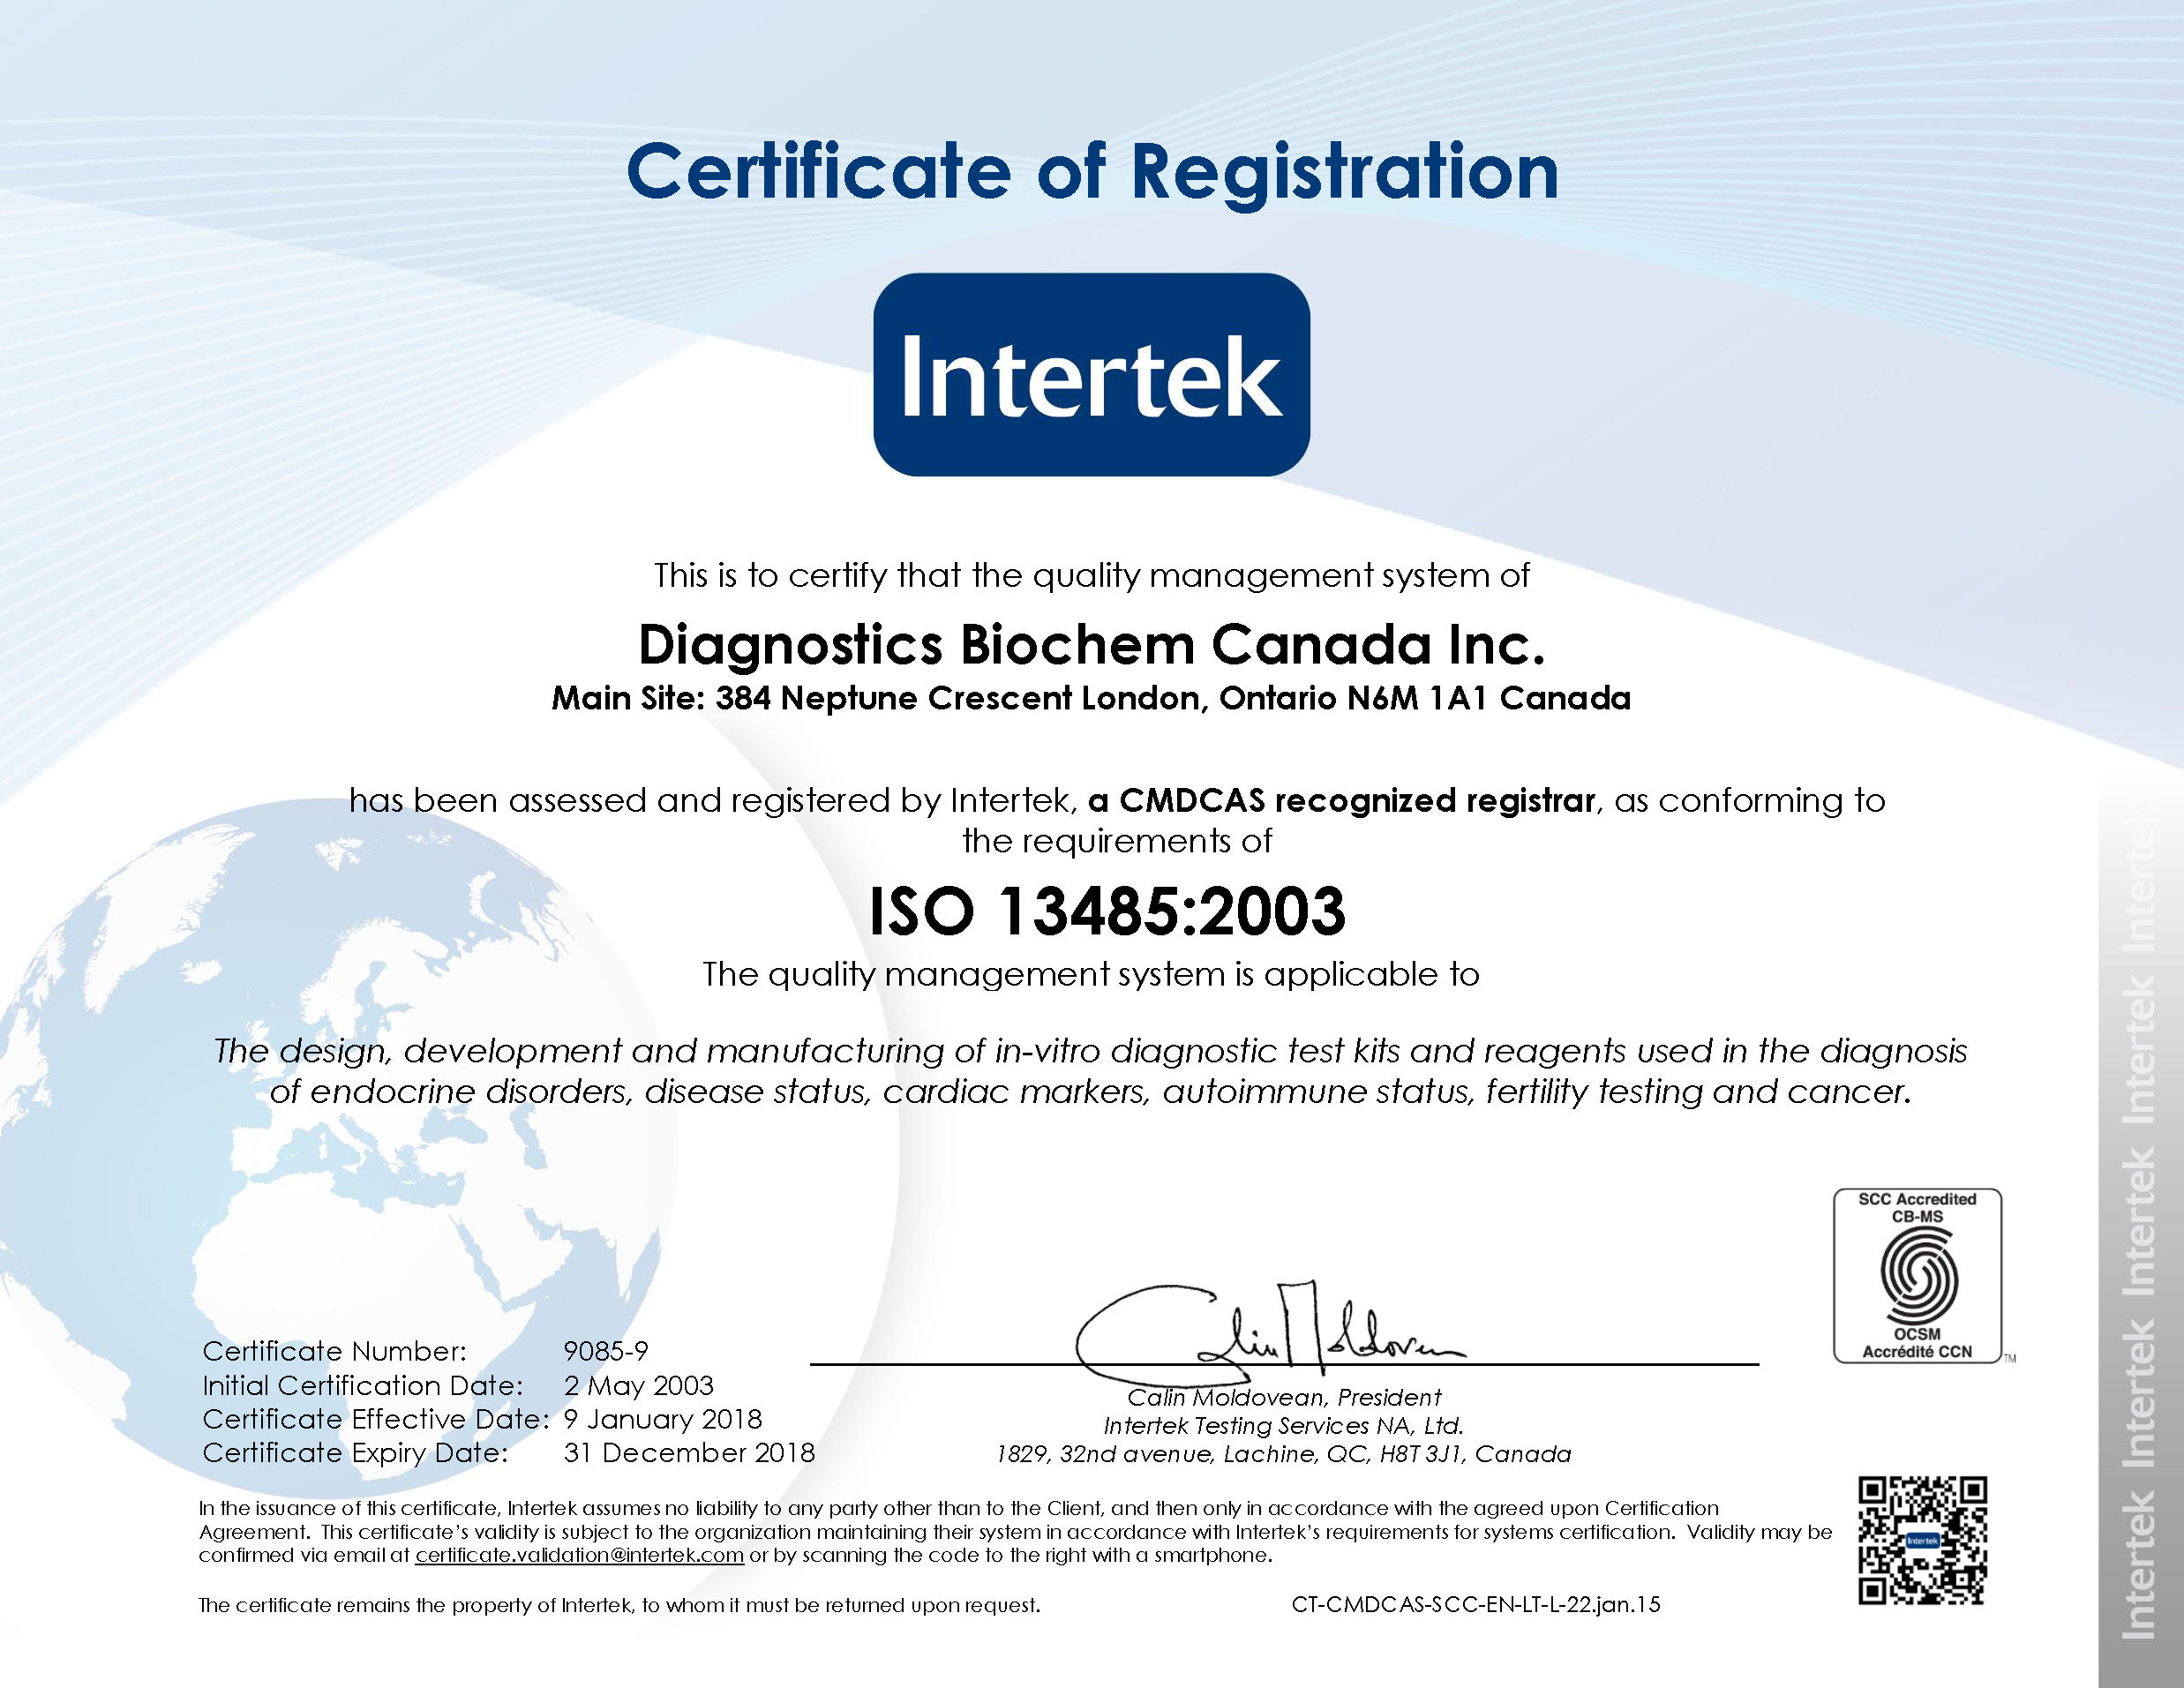 Diagnostics Biochem Canada Inc. ISO 13485:2003 Certificate of Registration